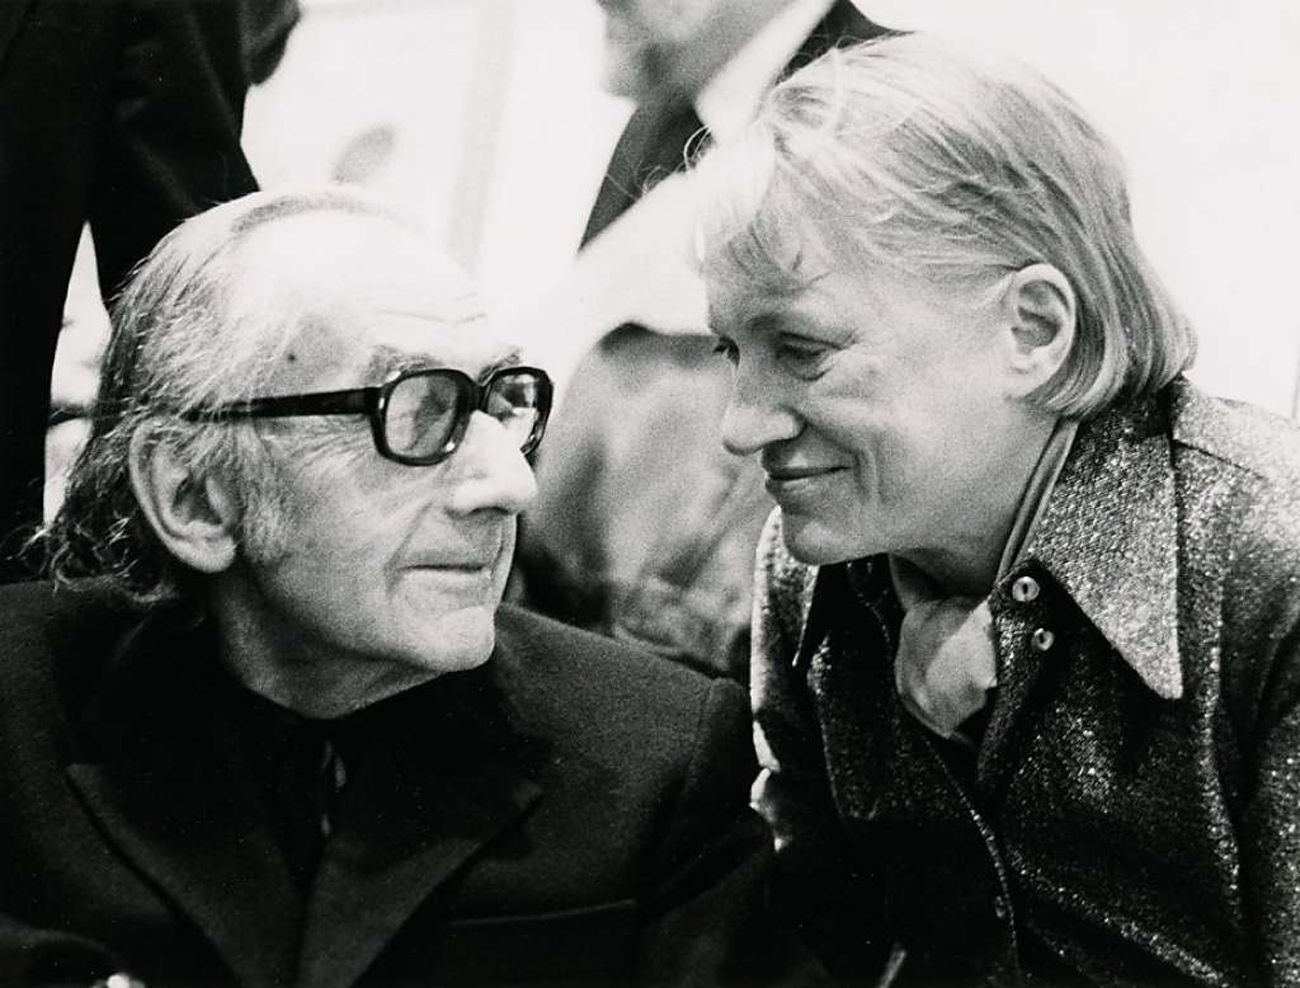 Man Ray and Lee Miller. Image from sfgate.com